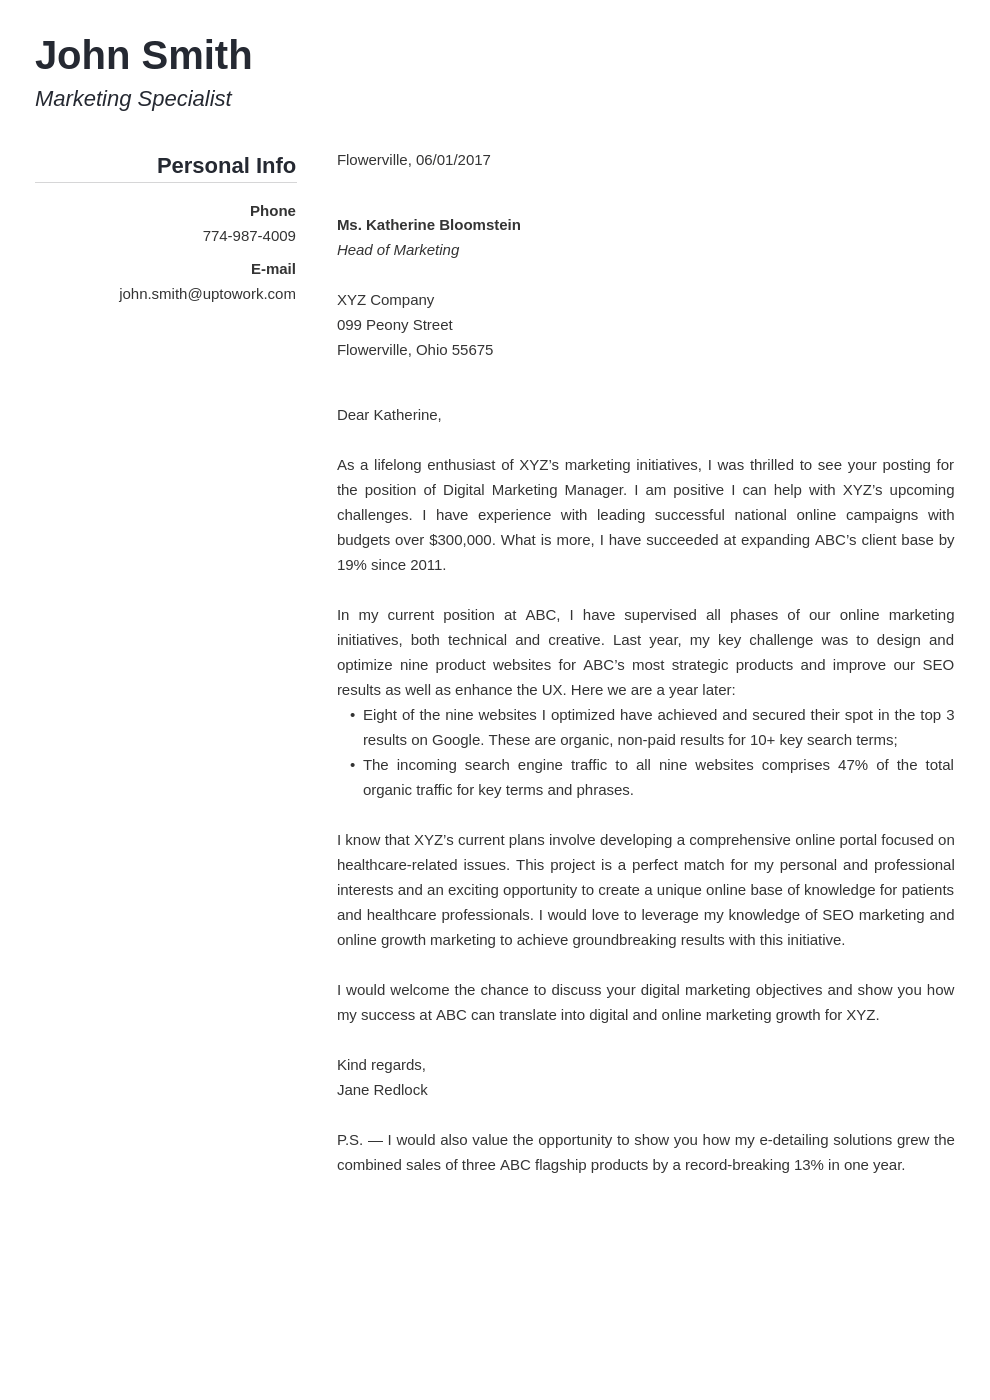 20 Cover Letter Templates Download Create Your Cover Letter in 5